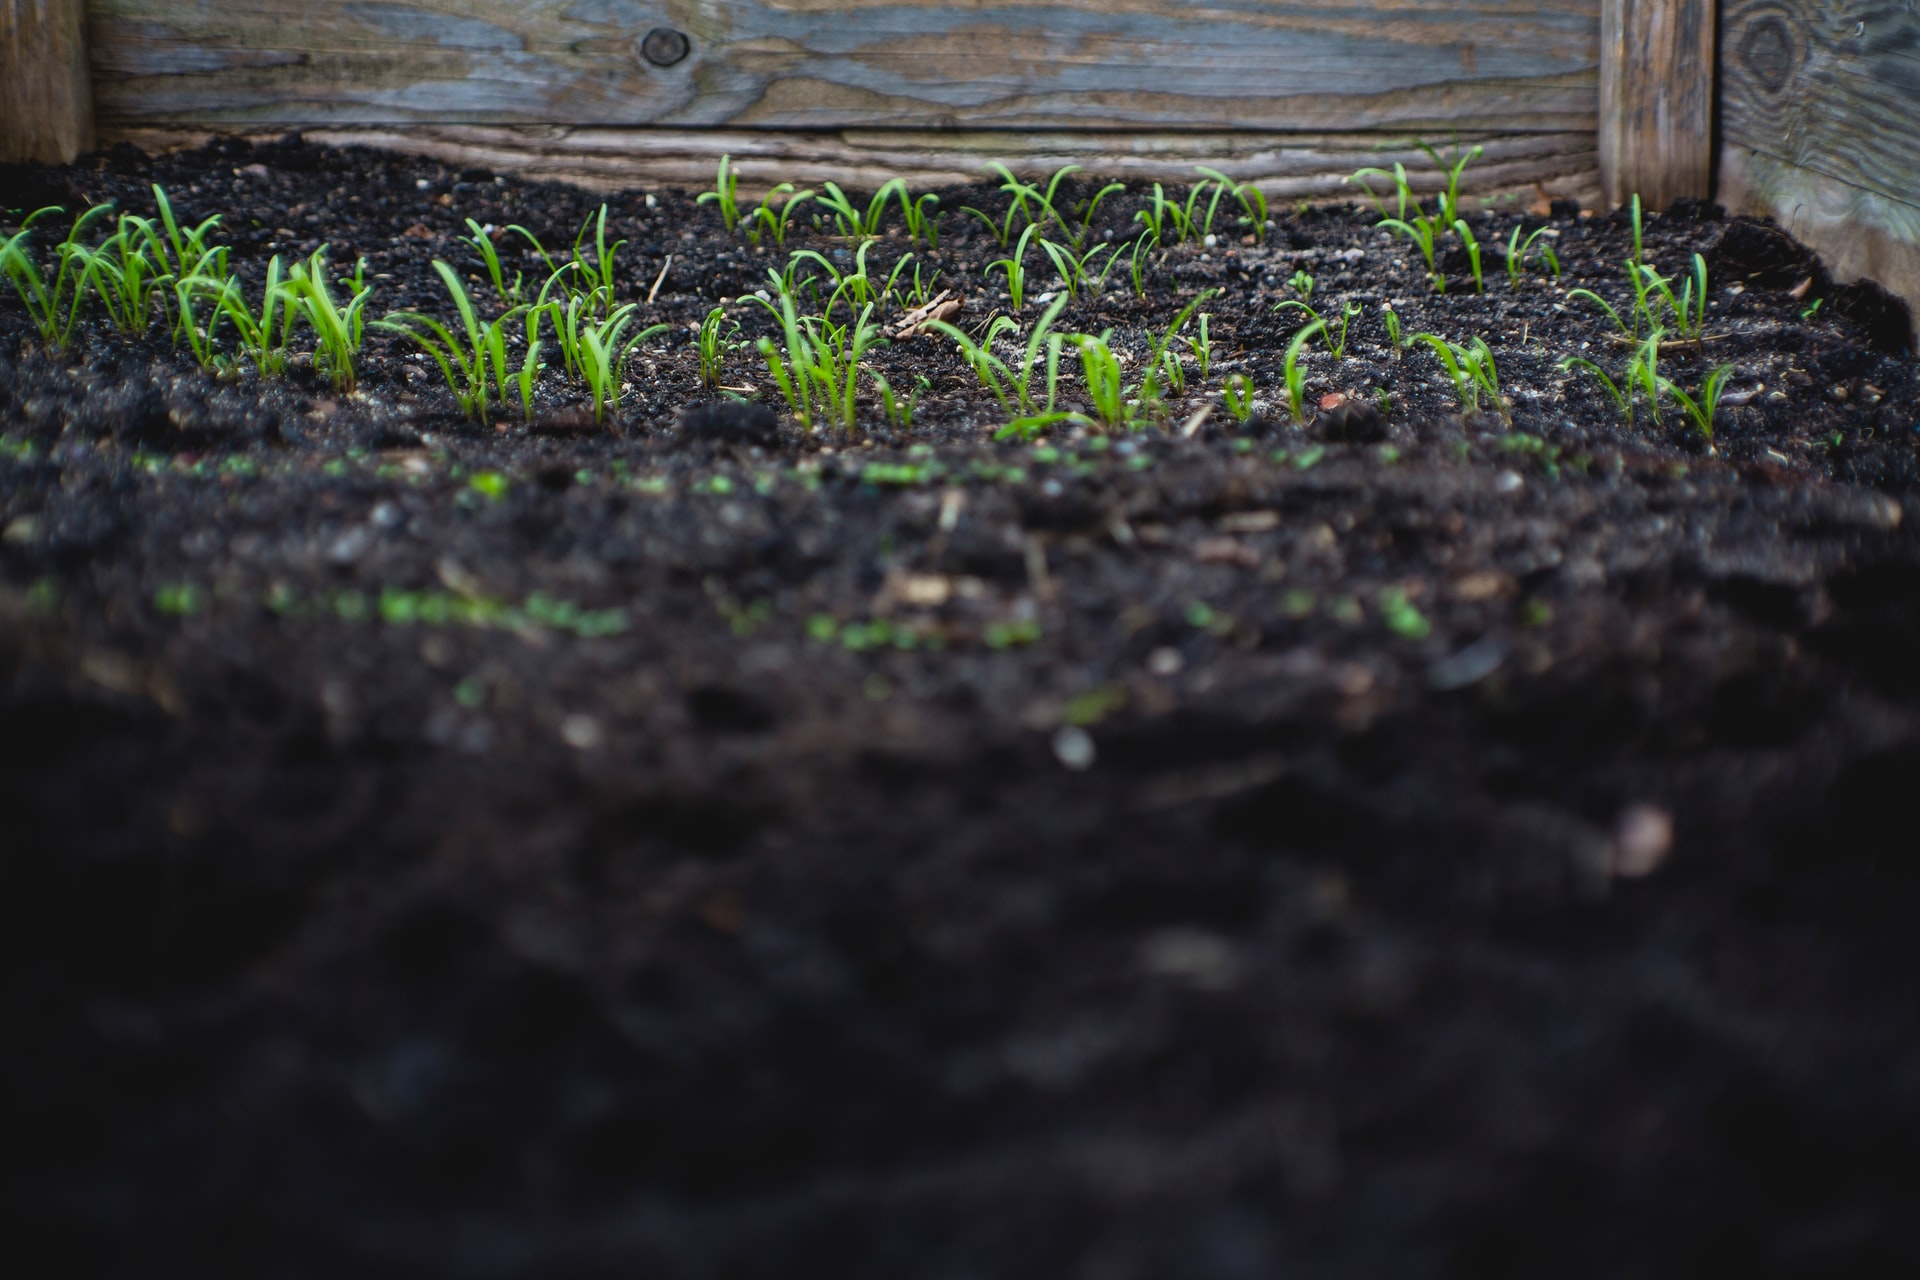 Purchase your cover crop seeds, compost and garlic for fall!